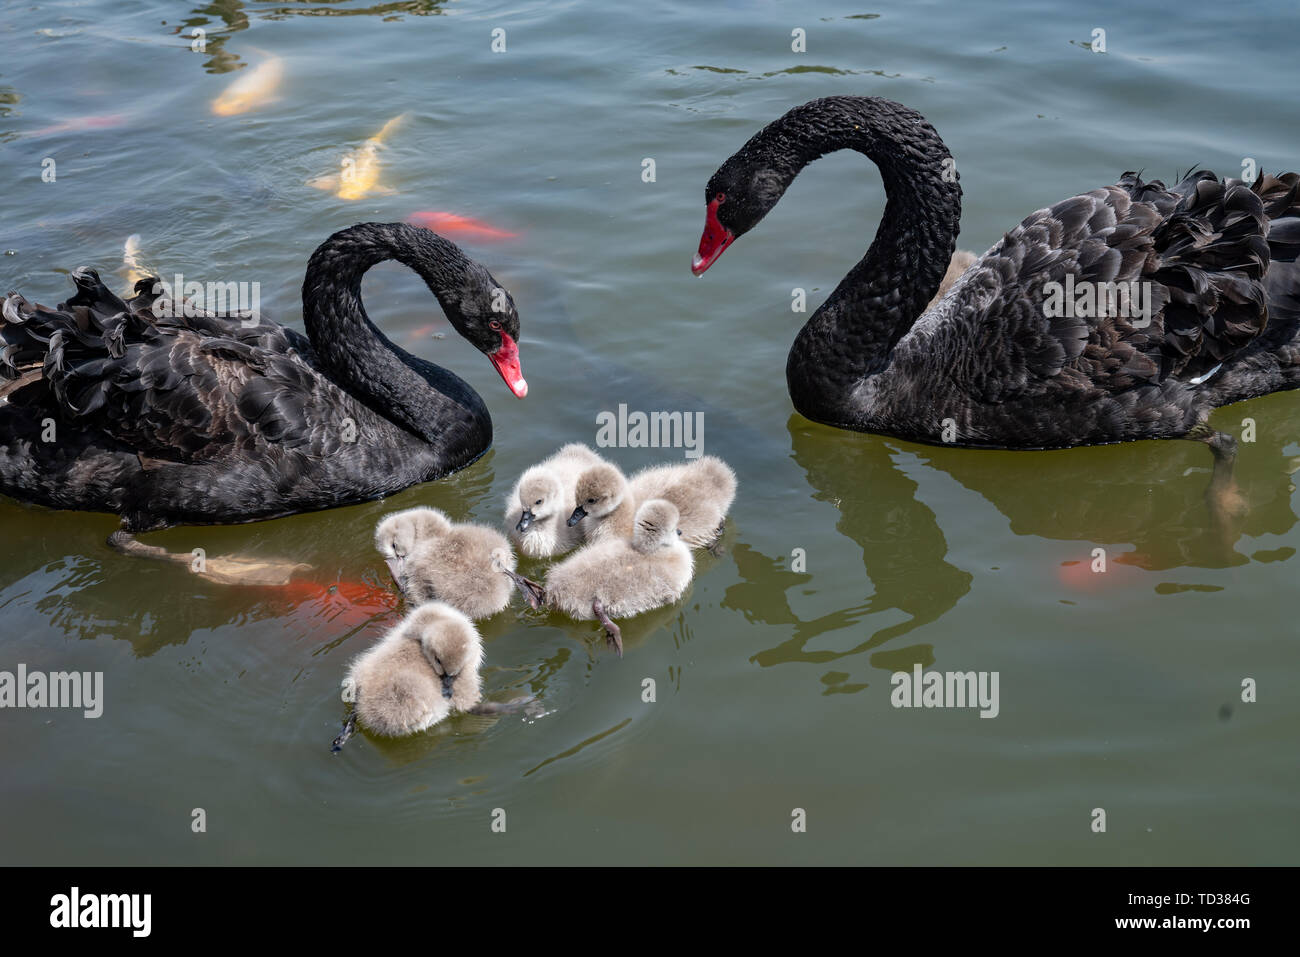 Black swan and baby swan on the lake Stock Photo